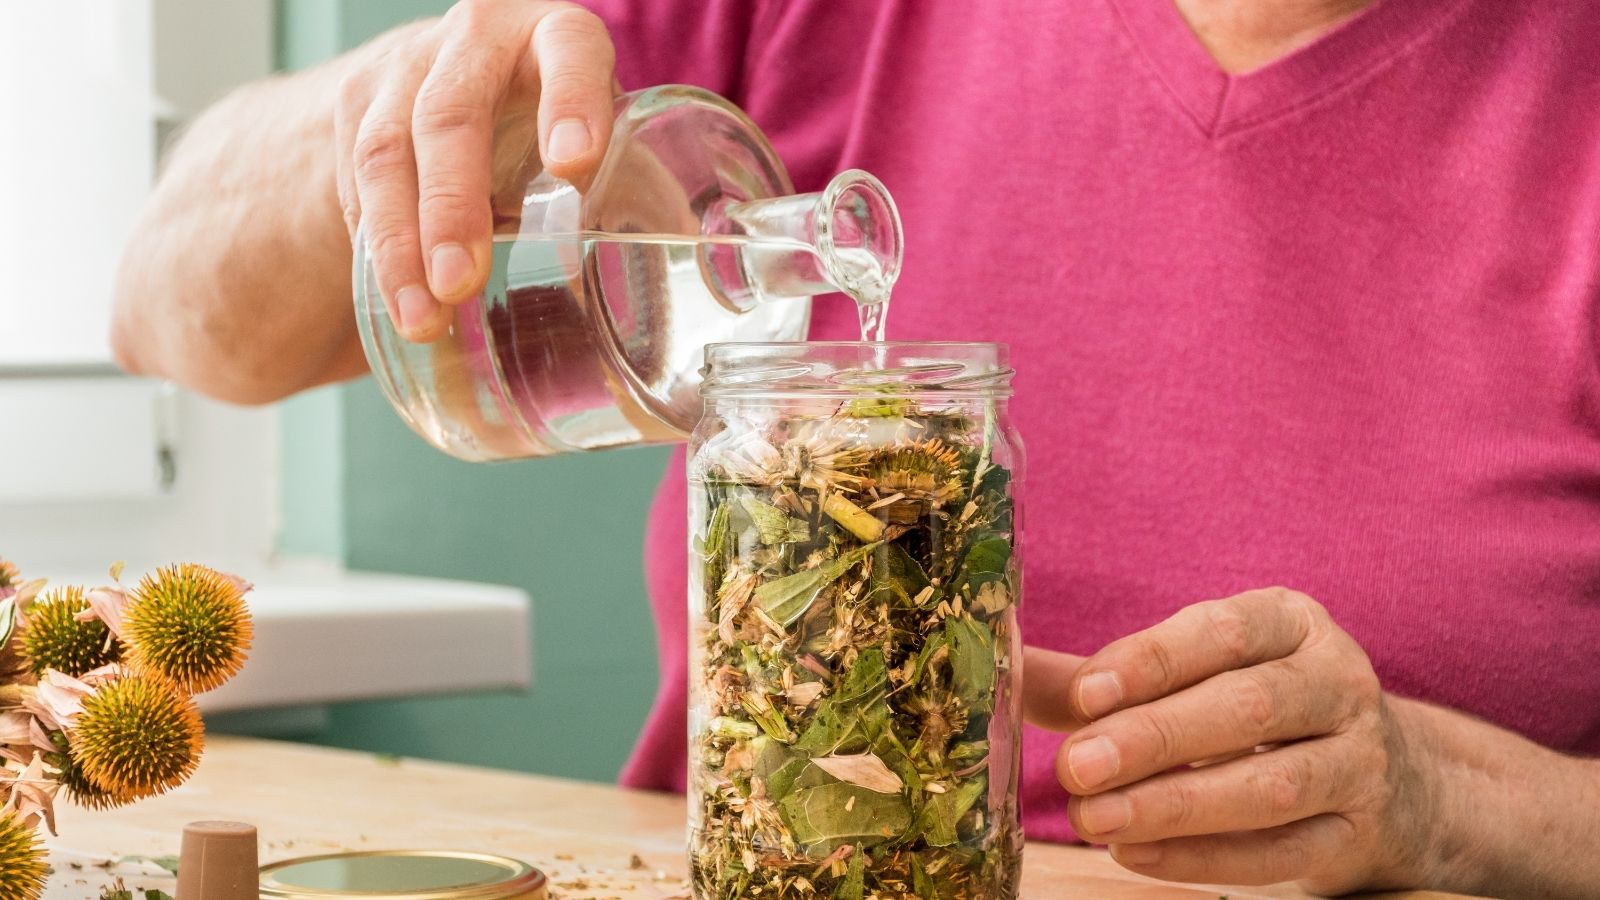 Woman filling jar with ethanol solvent and herbs.